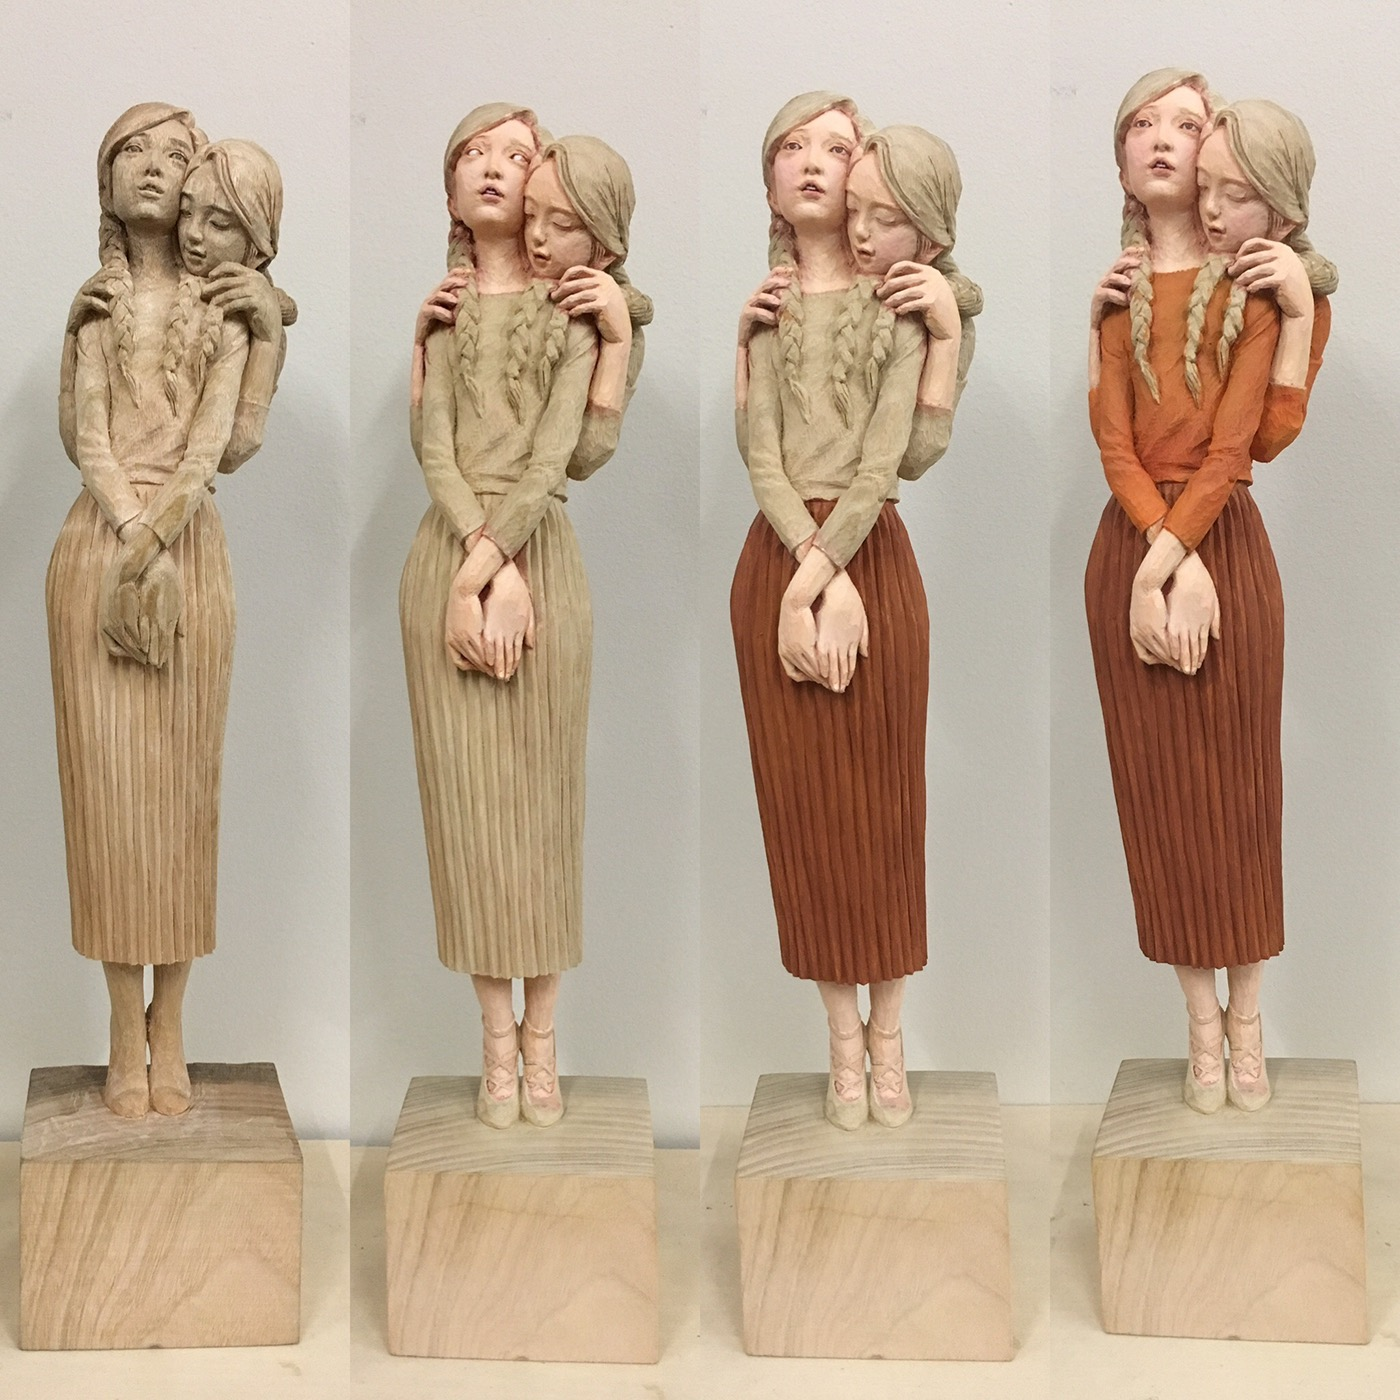 Figurative Wood Sculptures by Yoshitoshi Kanemak